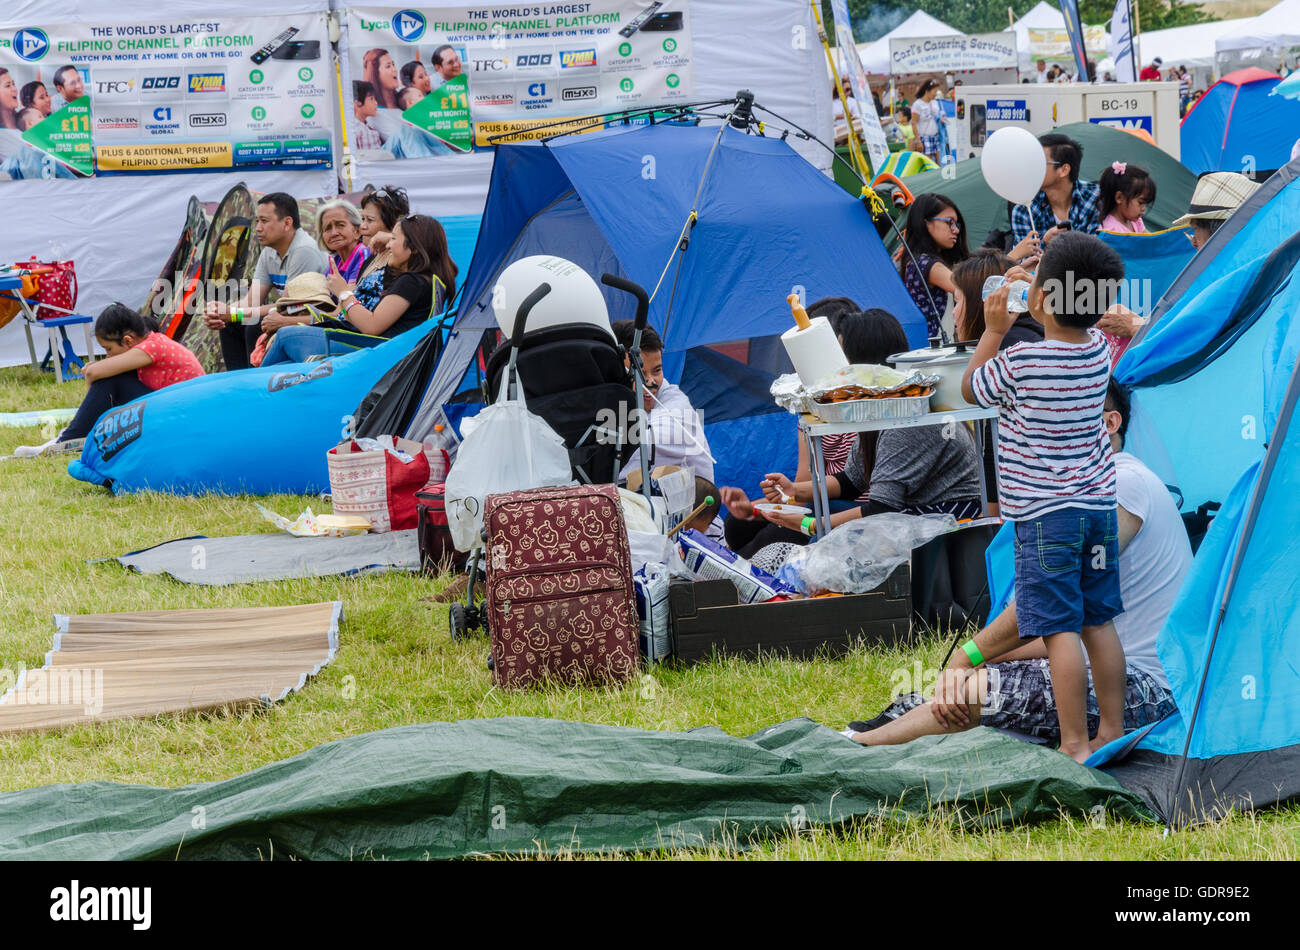 Cultural Setup Stock Photos & Cultural Setup Stock Images - Alamy